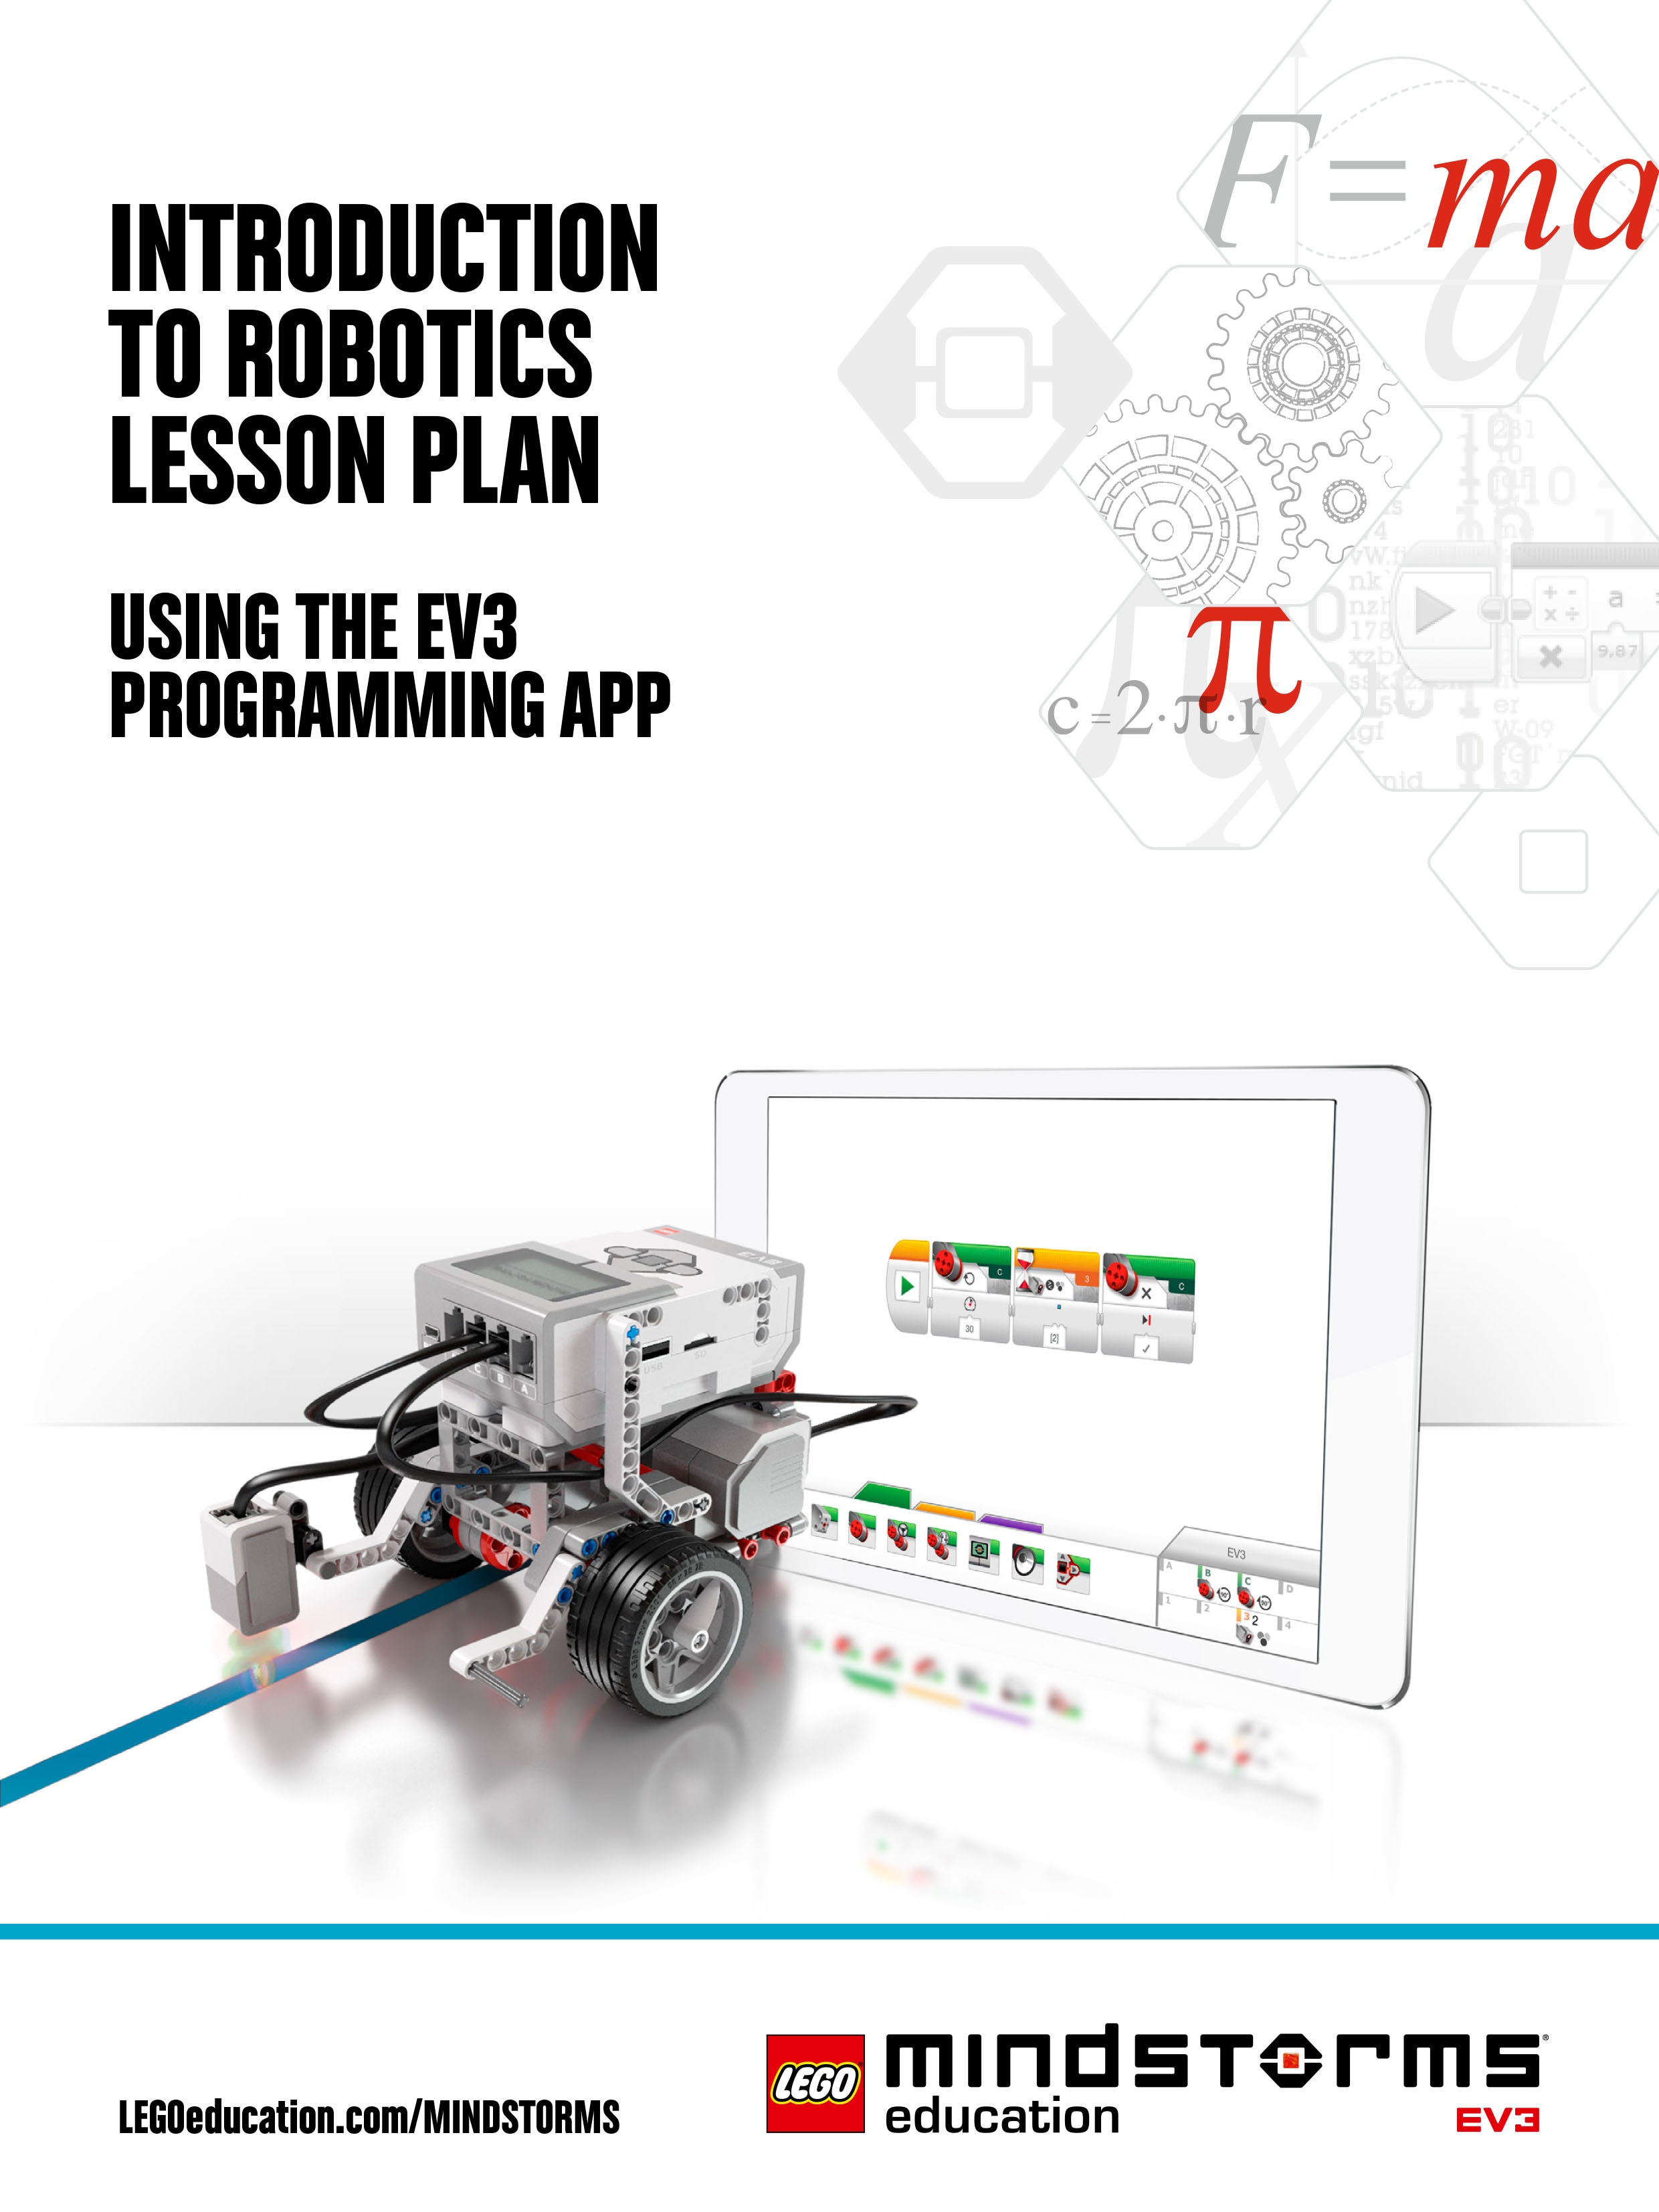 MINDSTORMS EV3 Introduction to Robotics (tablet)